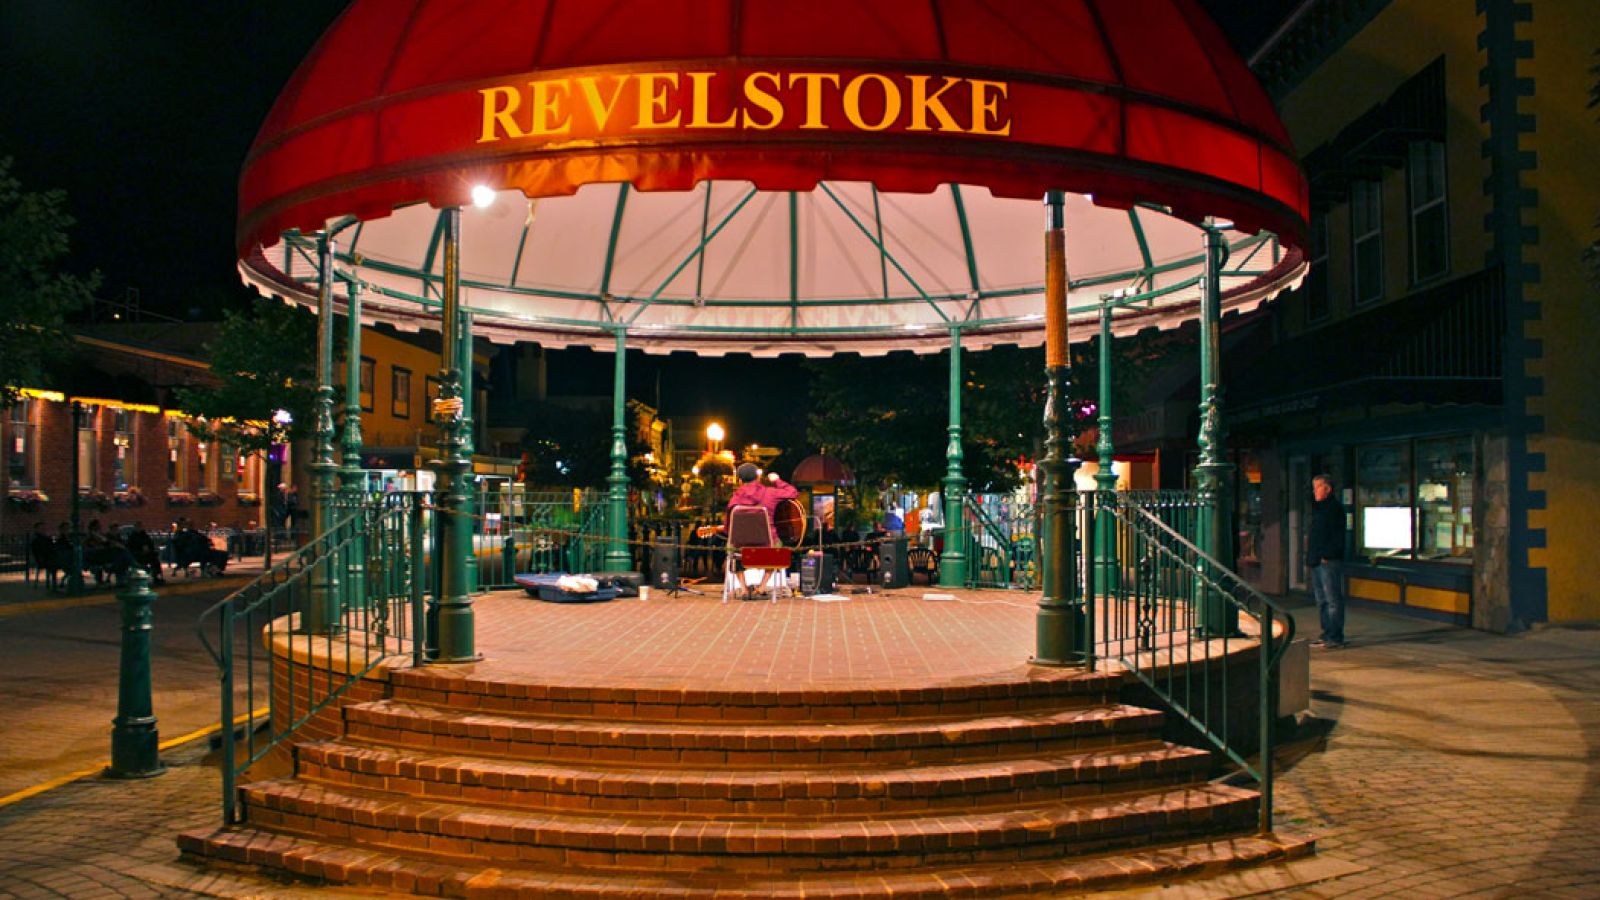 Nightly entertainment during the summer in downtown Revelstoke